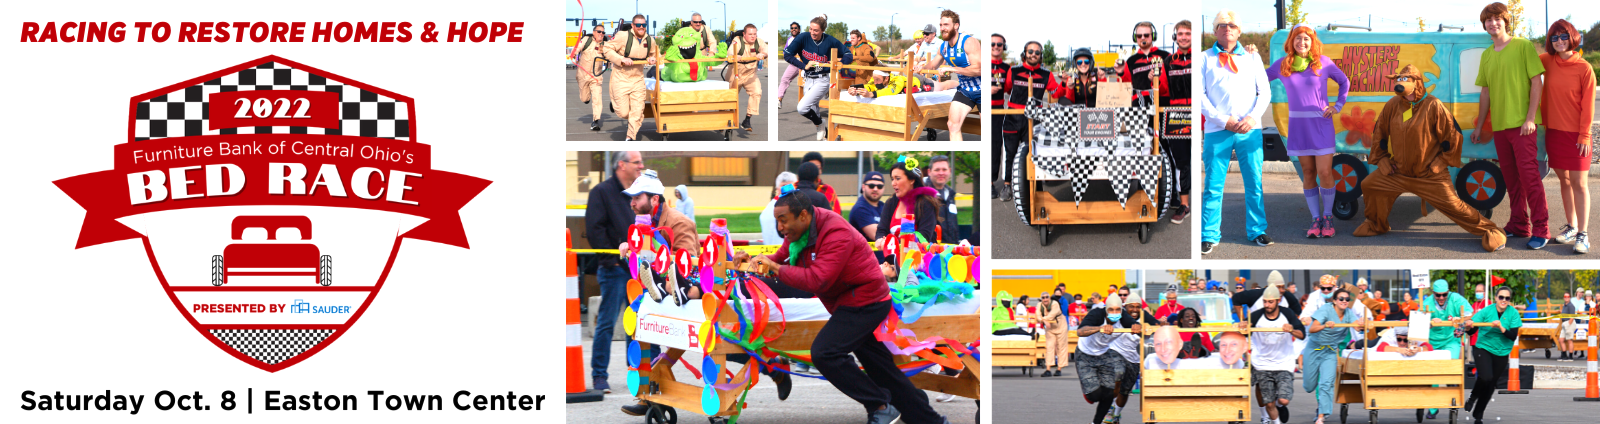 2018 Furniture Bank Bed Race Columbus 2018 Furniture Bank of Central